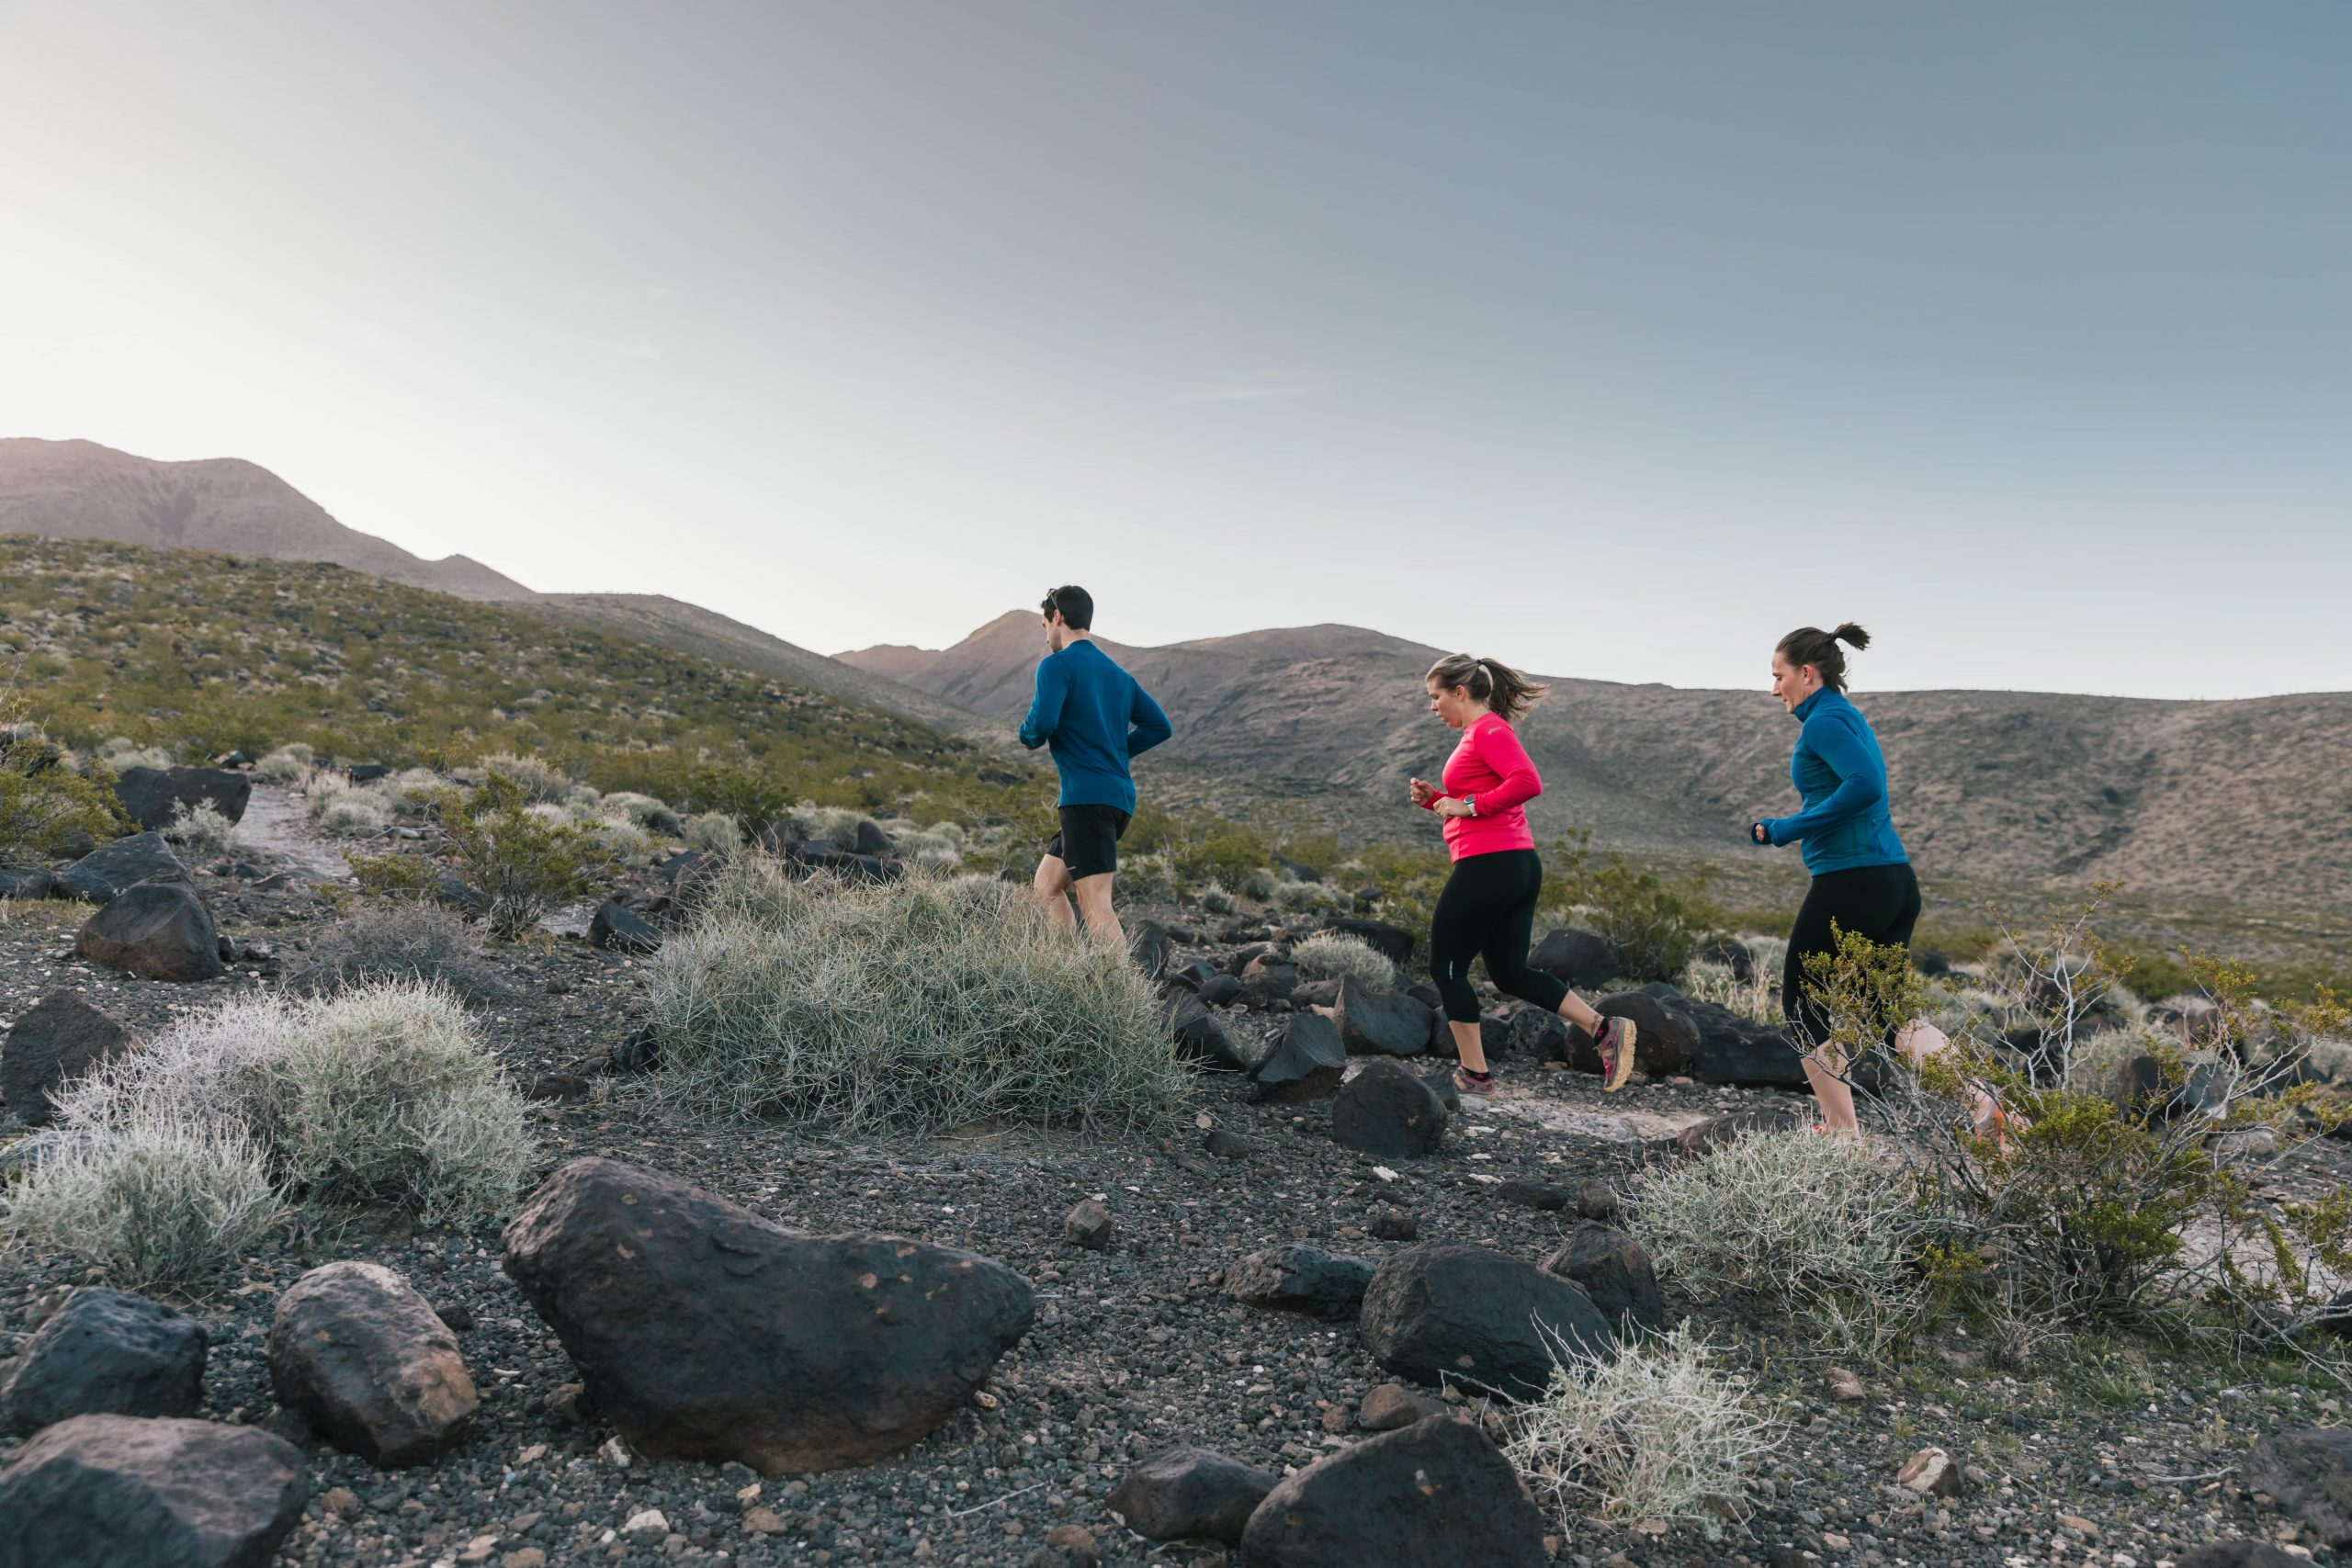 Two women and a man run on a trail